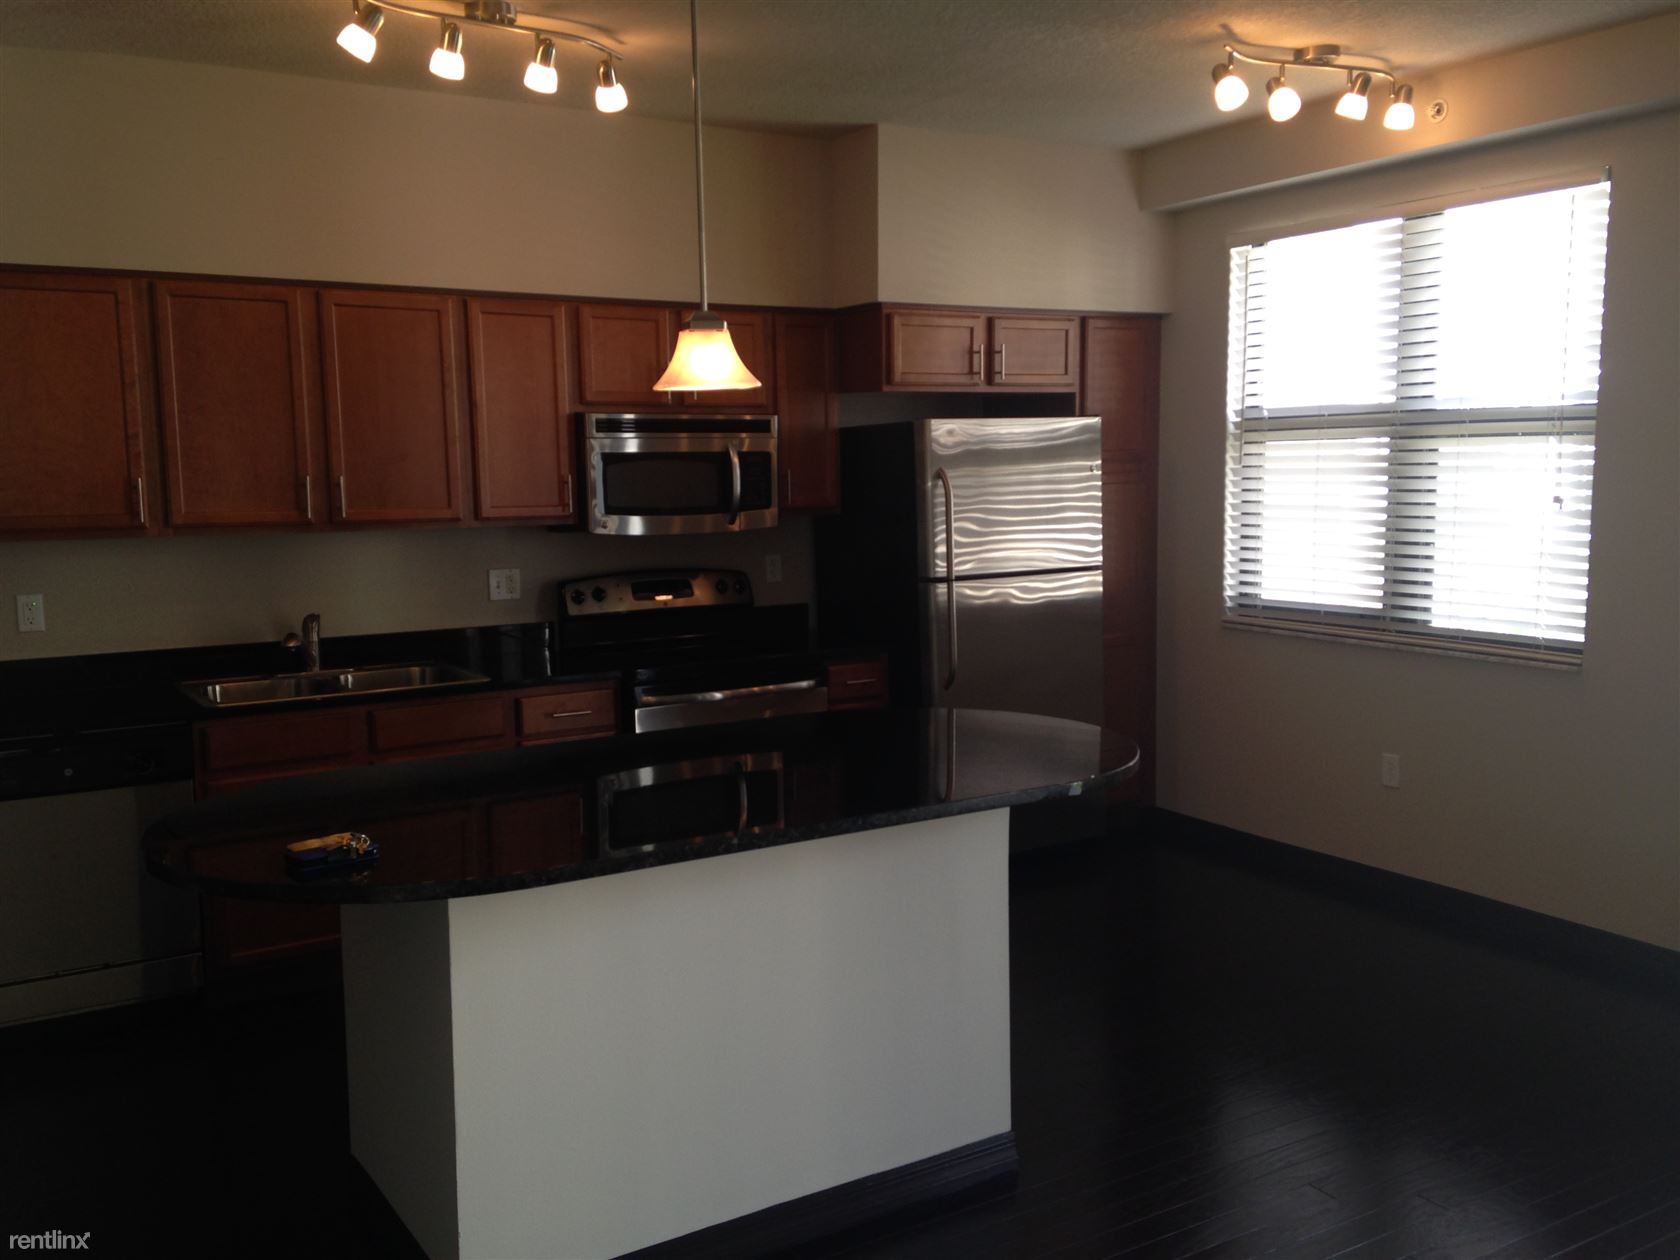 4th ave, Fort Lauderdale, FL - $1,700